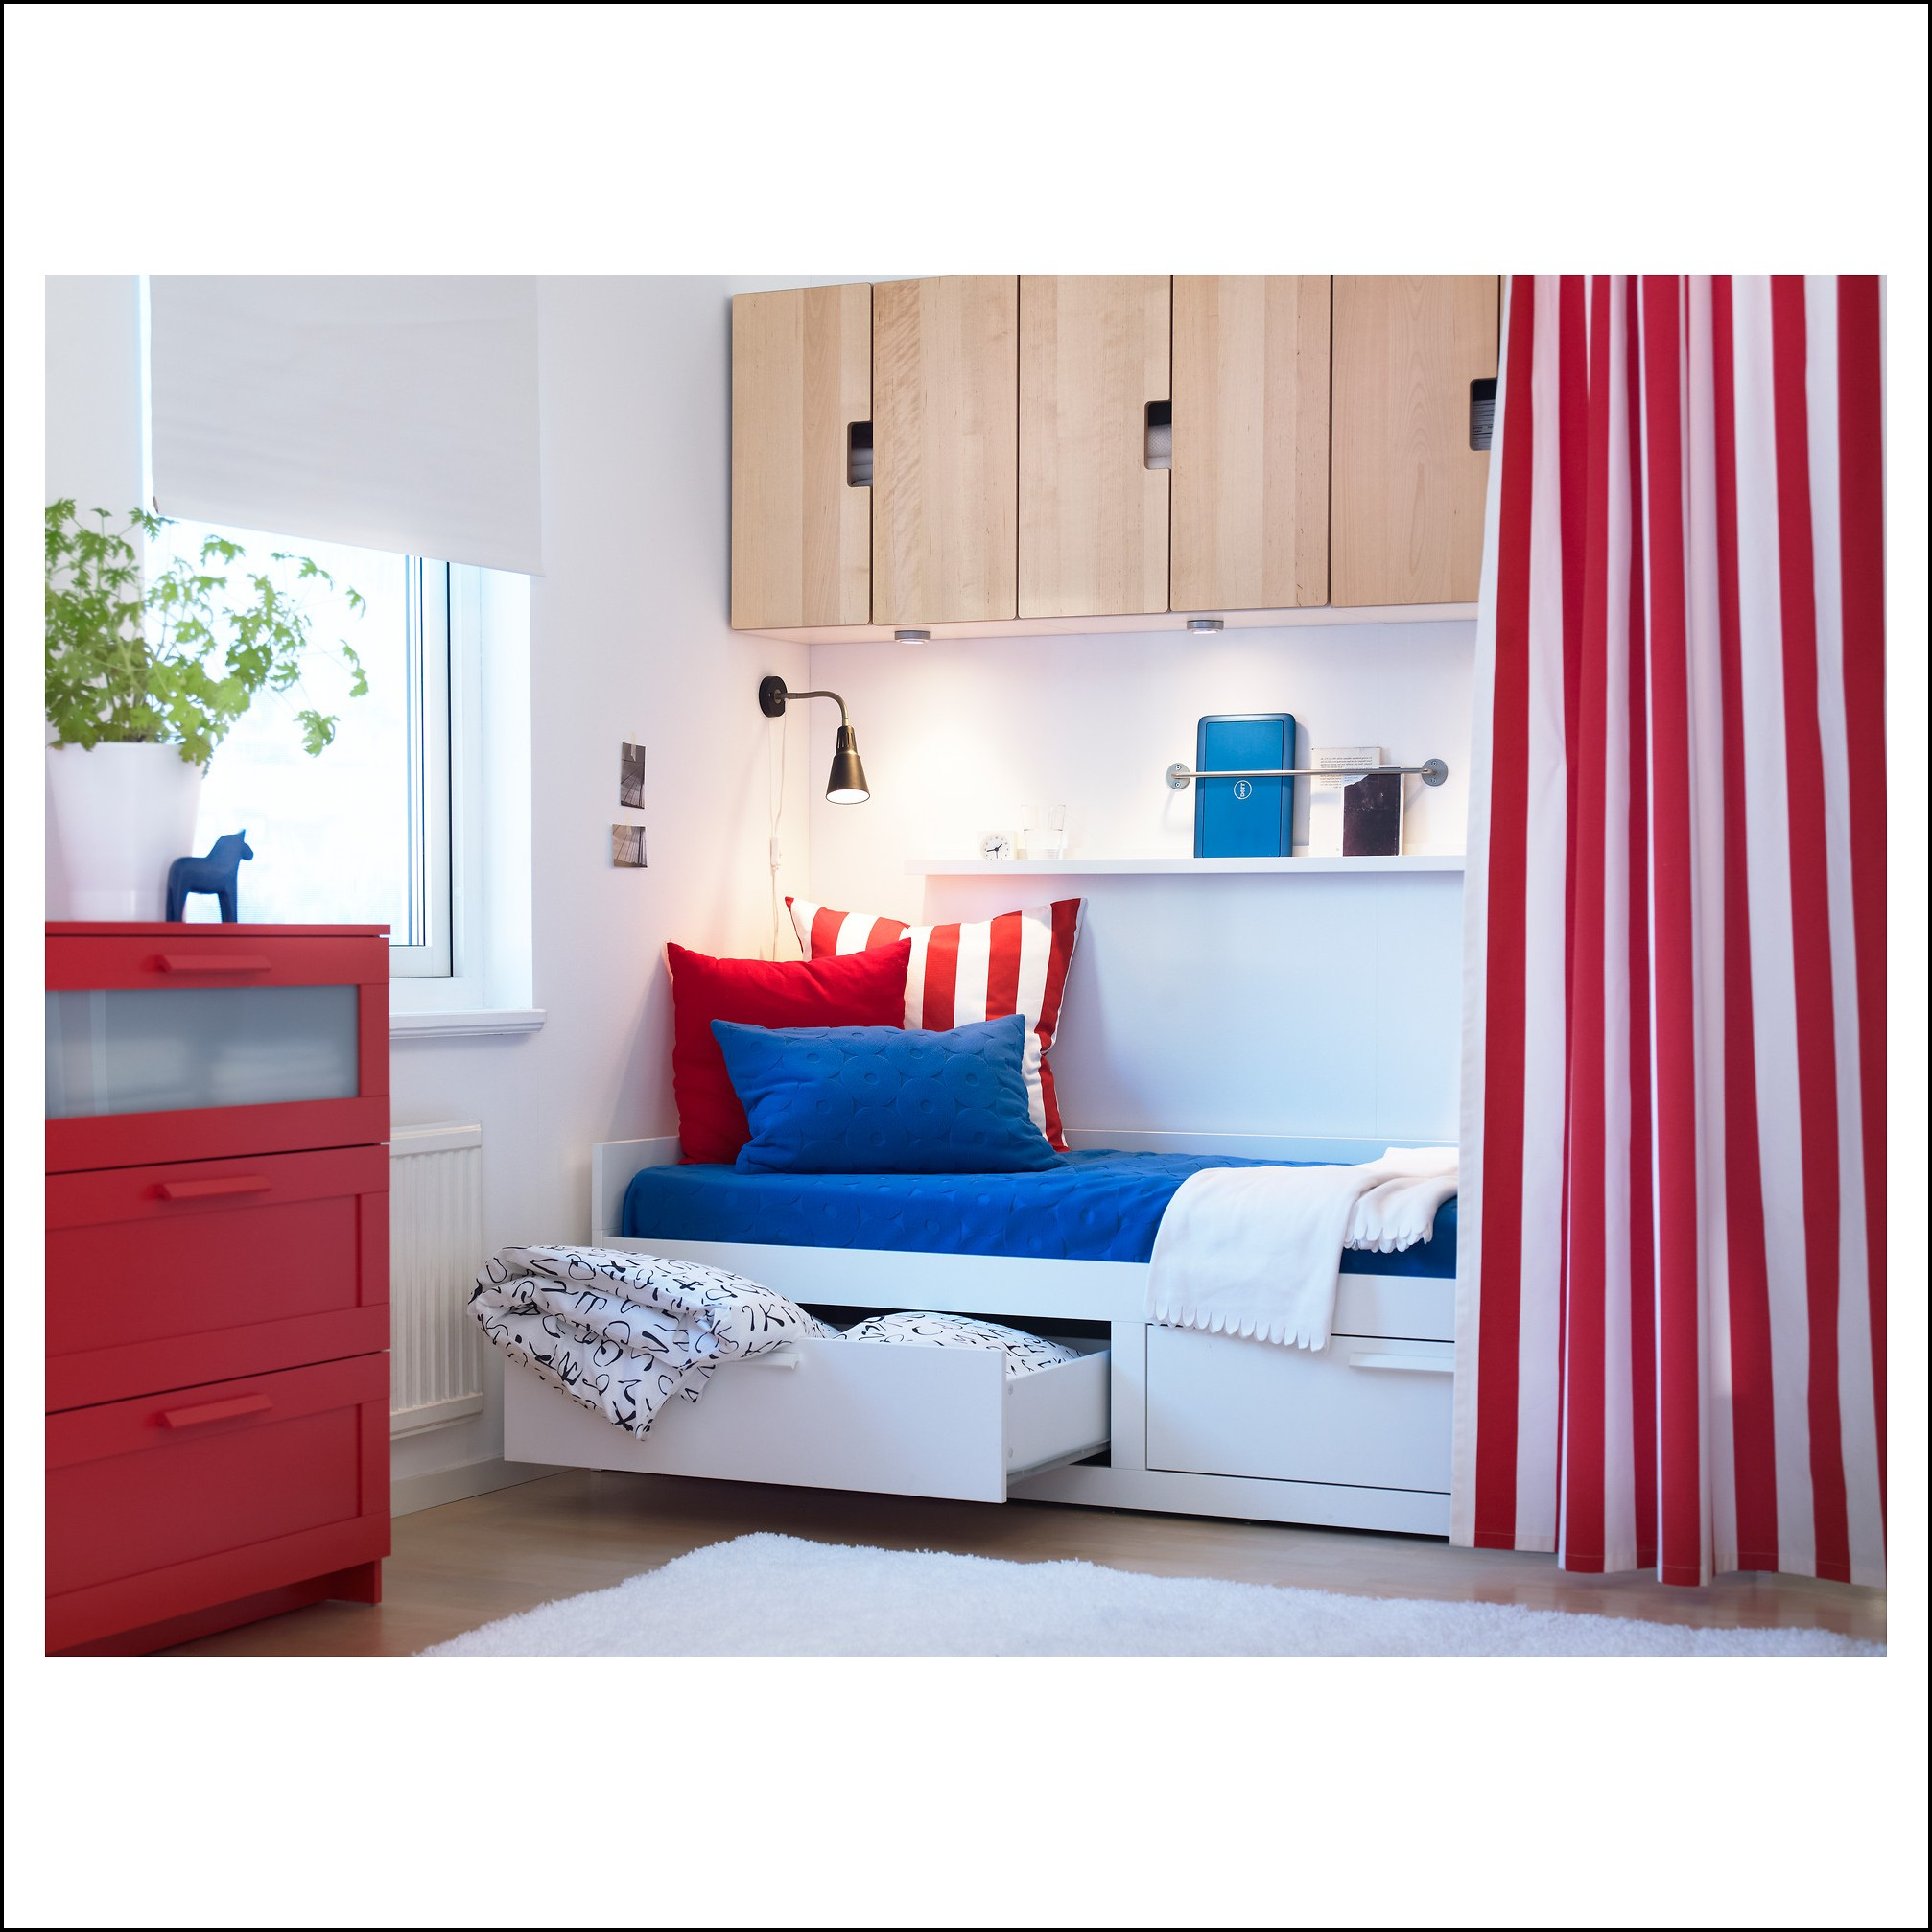 ikea brimnes bett bewertung betten house und dekor galerie 4qragd9w3e. Black Bedroom Furniture Sets. Home Design Ideas